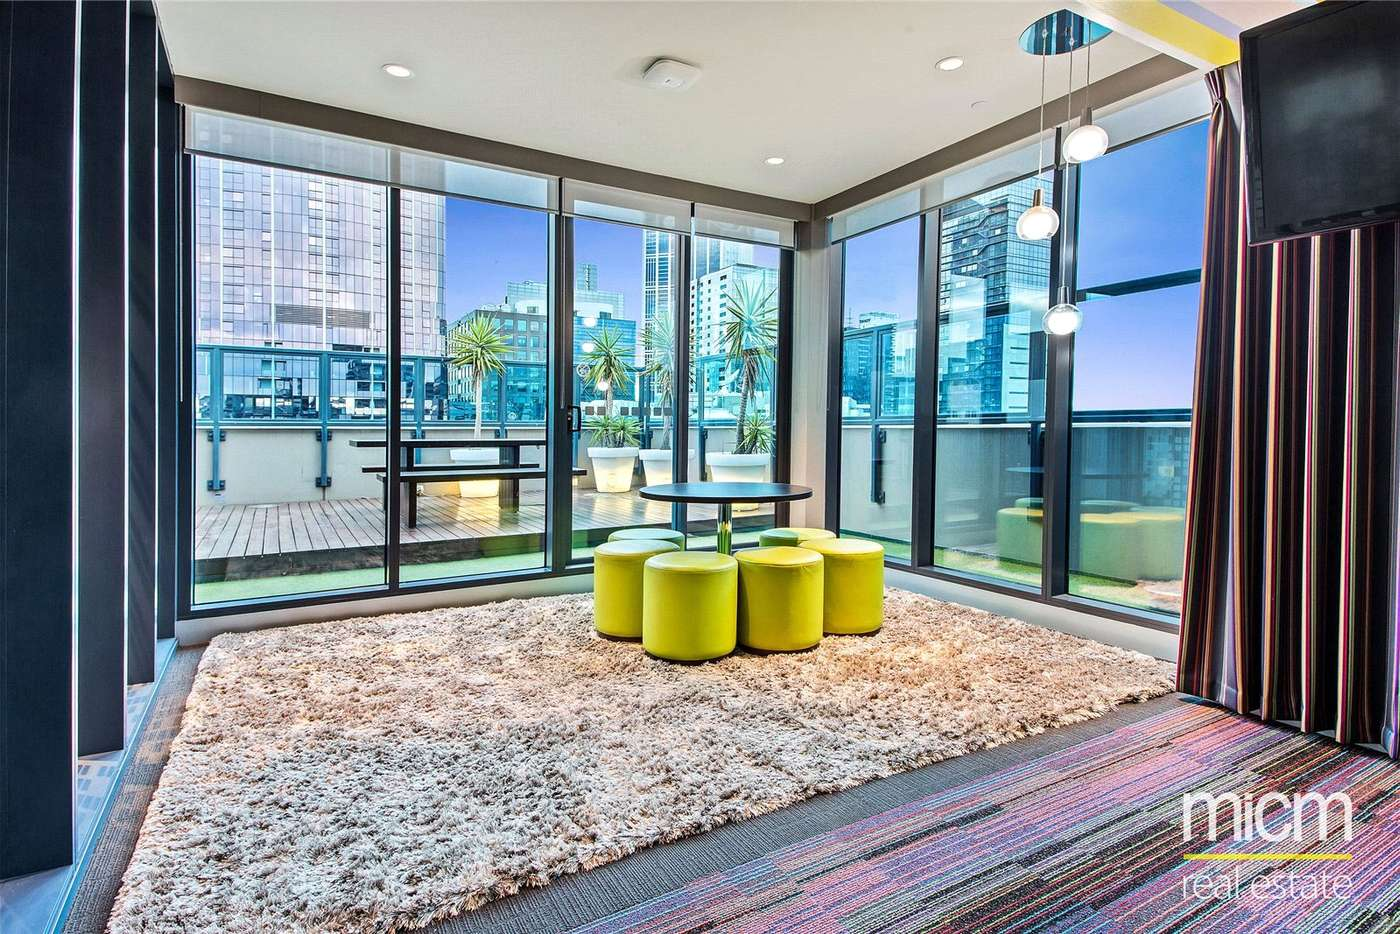 Seventh view of Homely apartment listing, 412/181 ABeckett Street, Melbourne VIC 3000